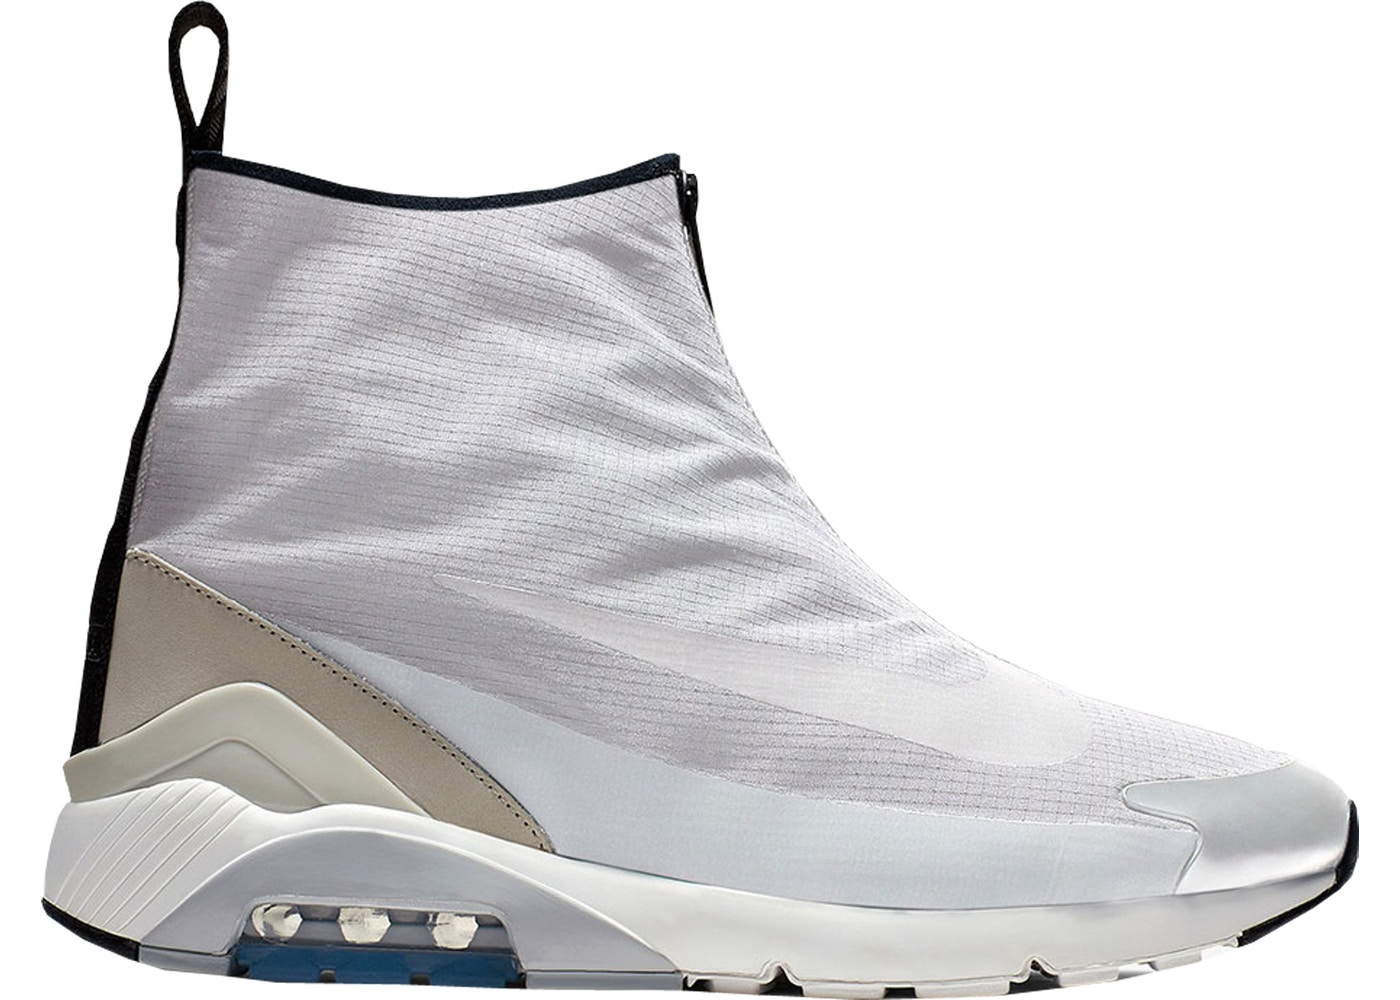 Size 13 Shoes - Release Date